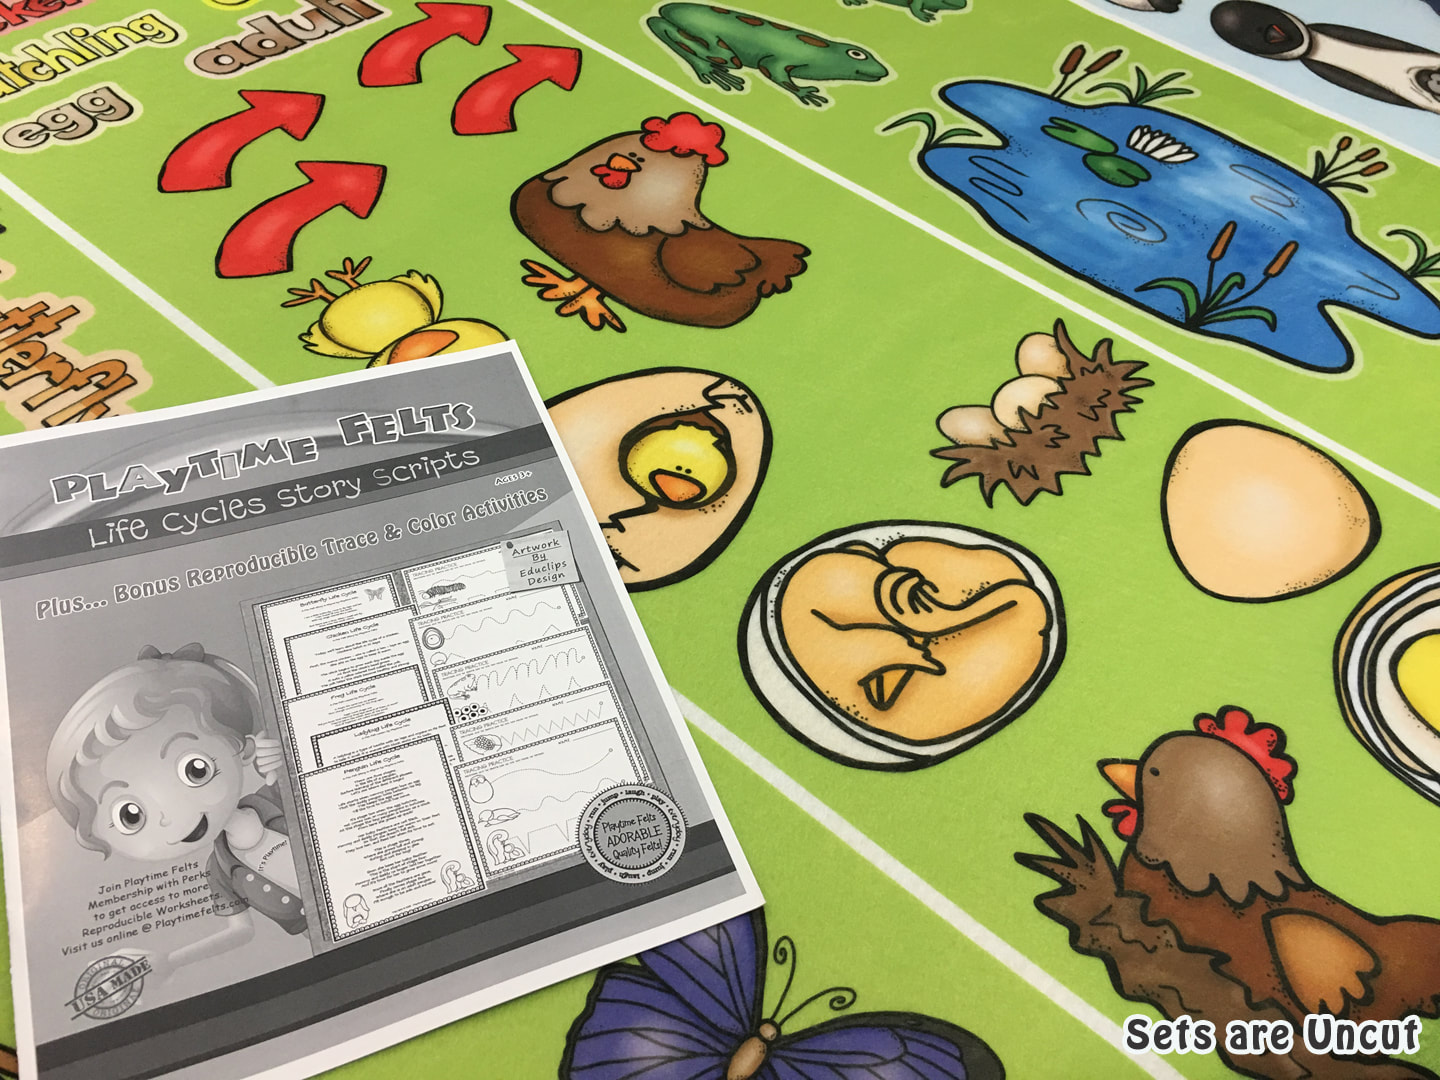 Five Life Cycles Flannel Board Stories For Toddlers